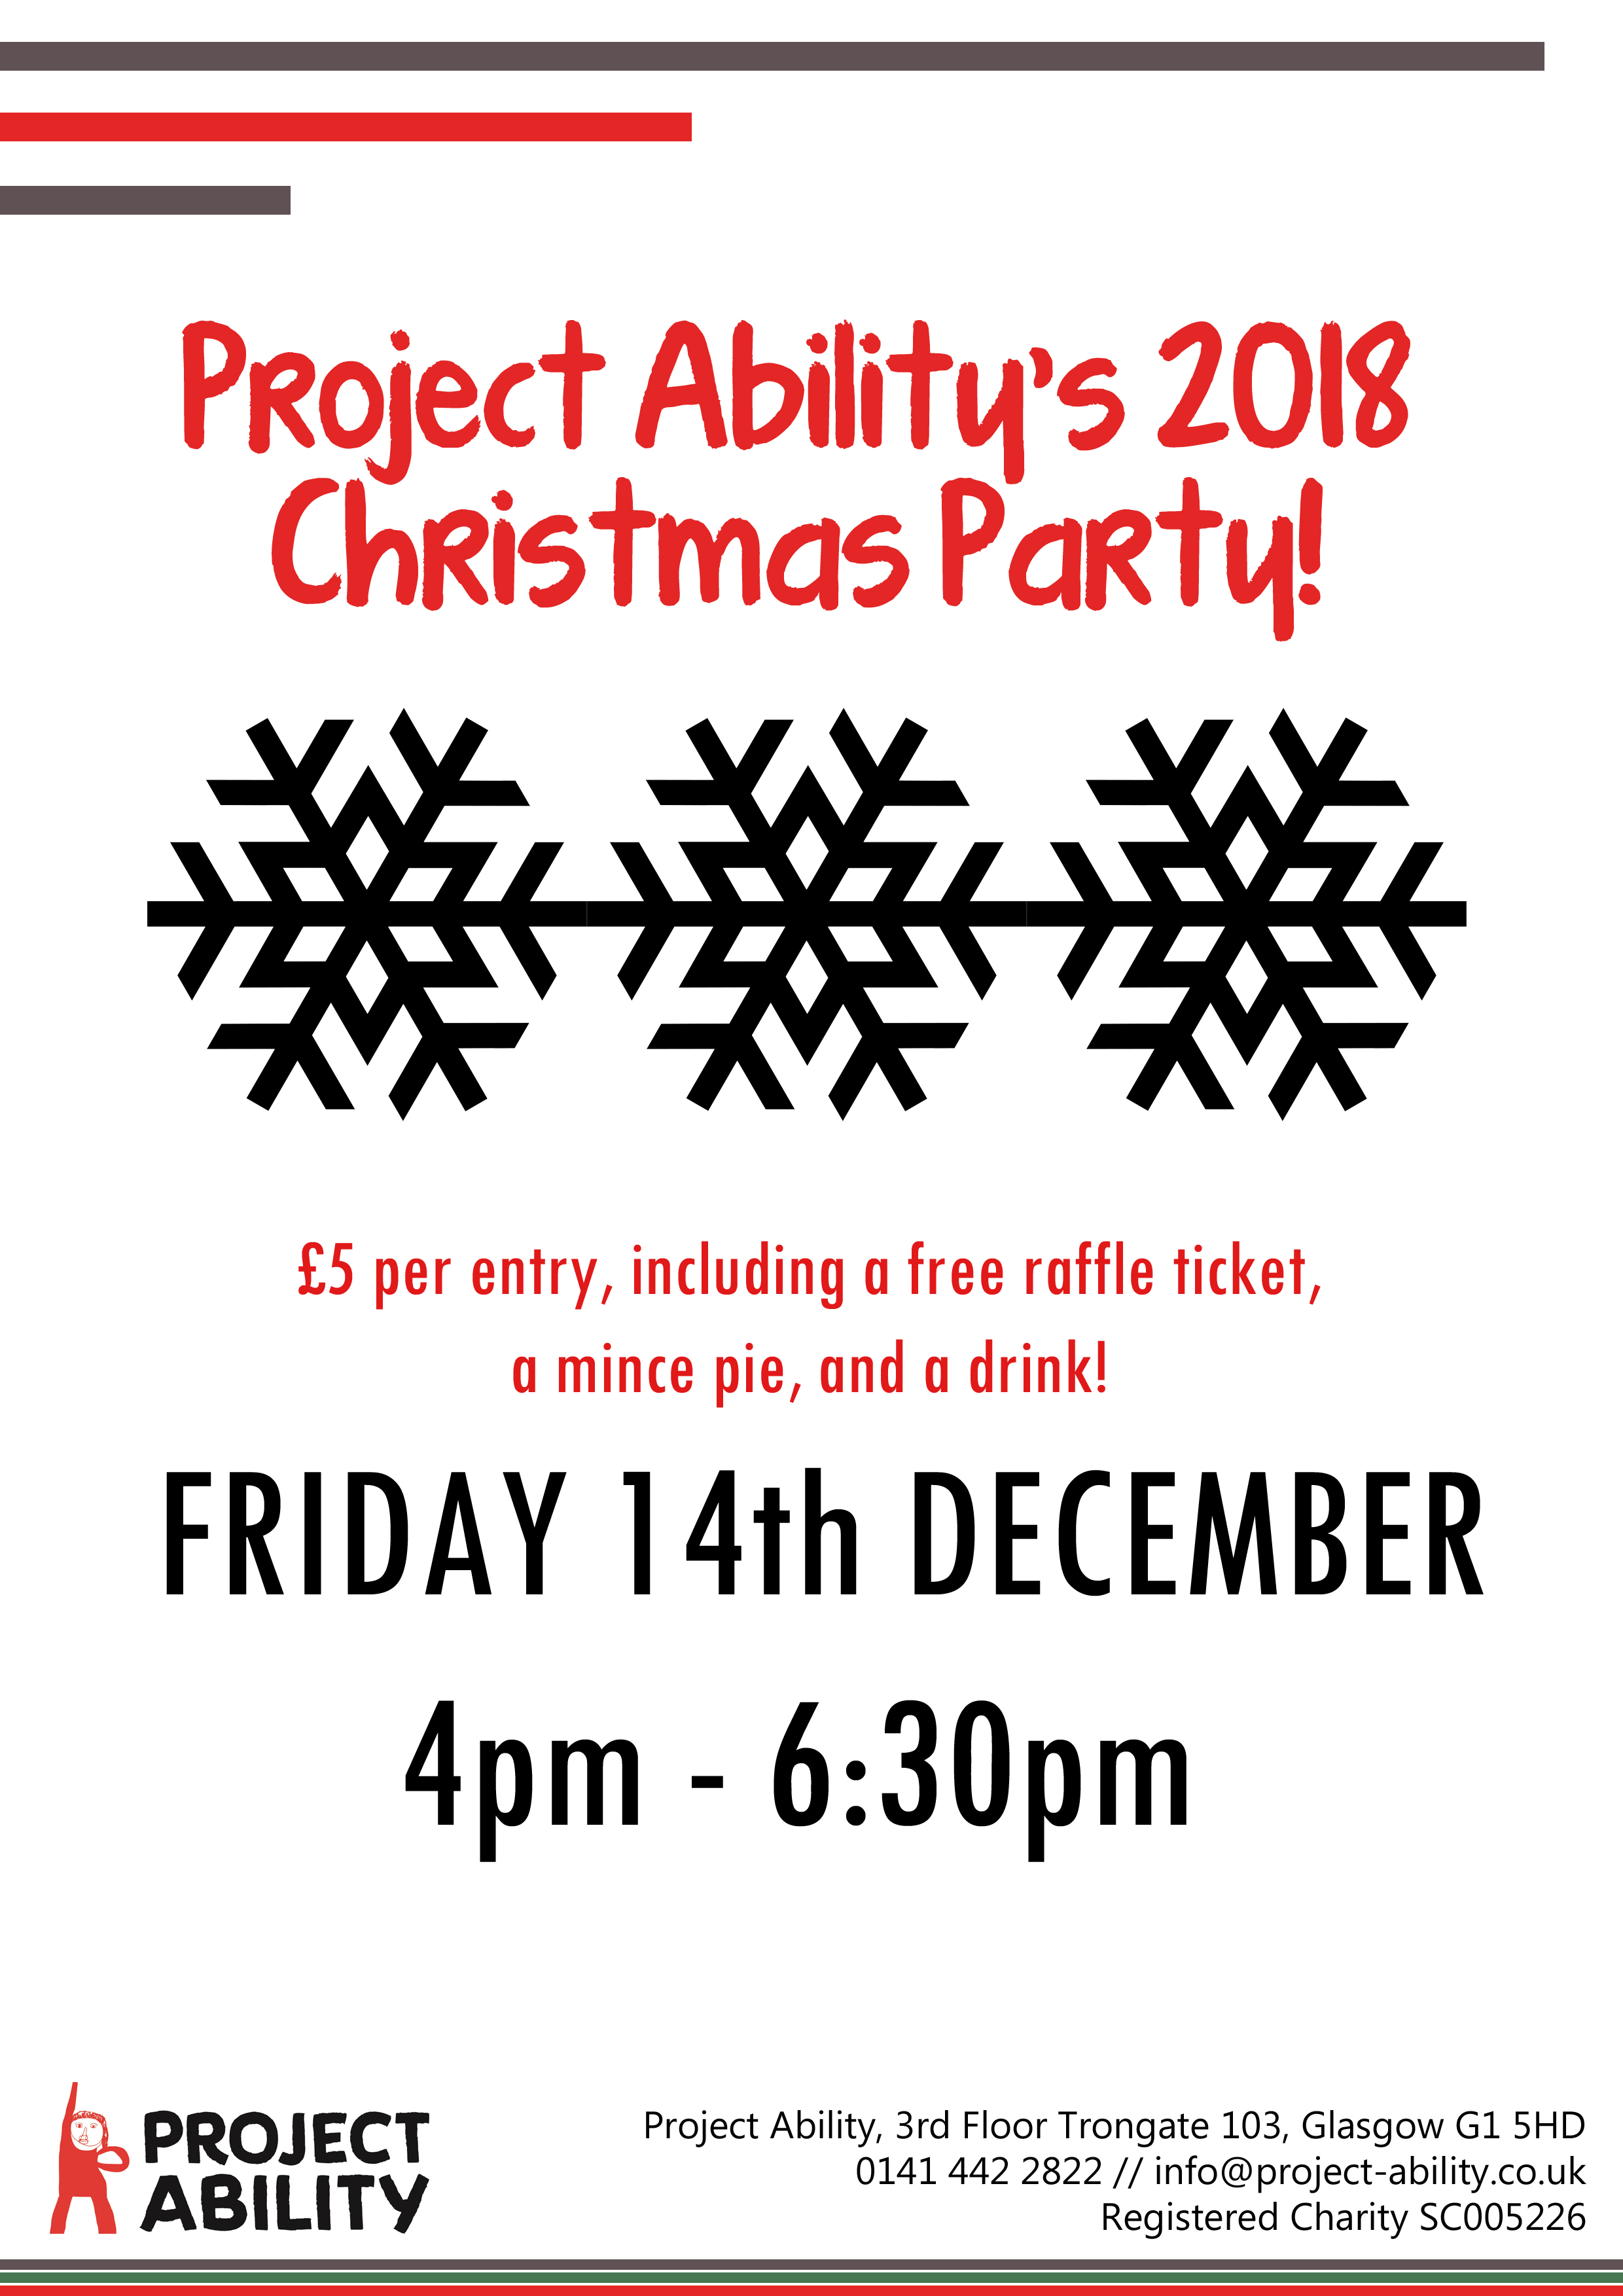 Project Ability Christmas party poster